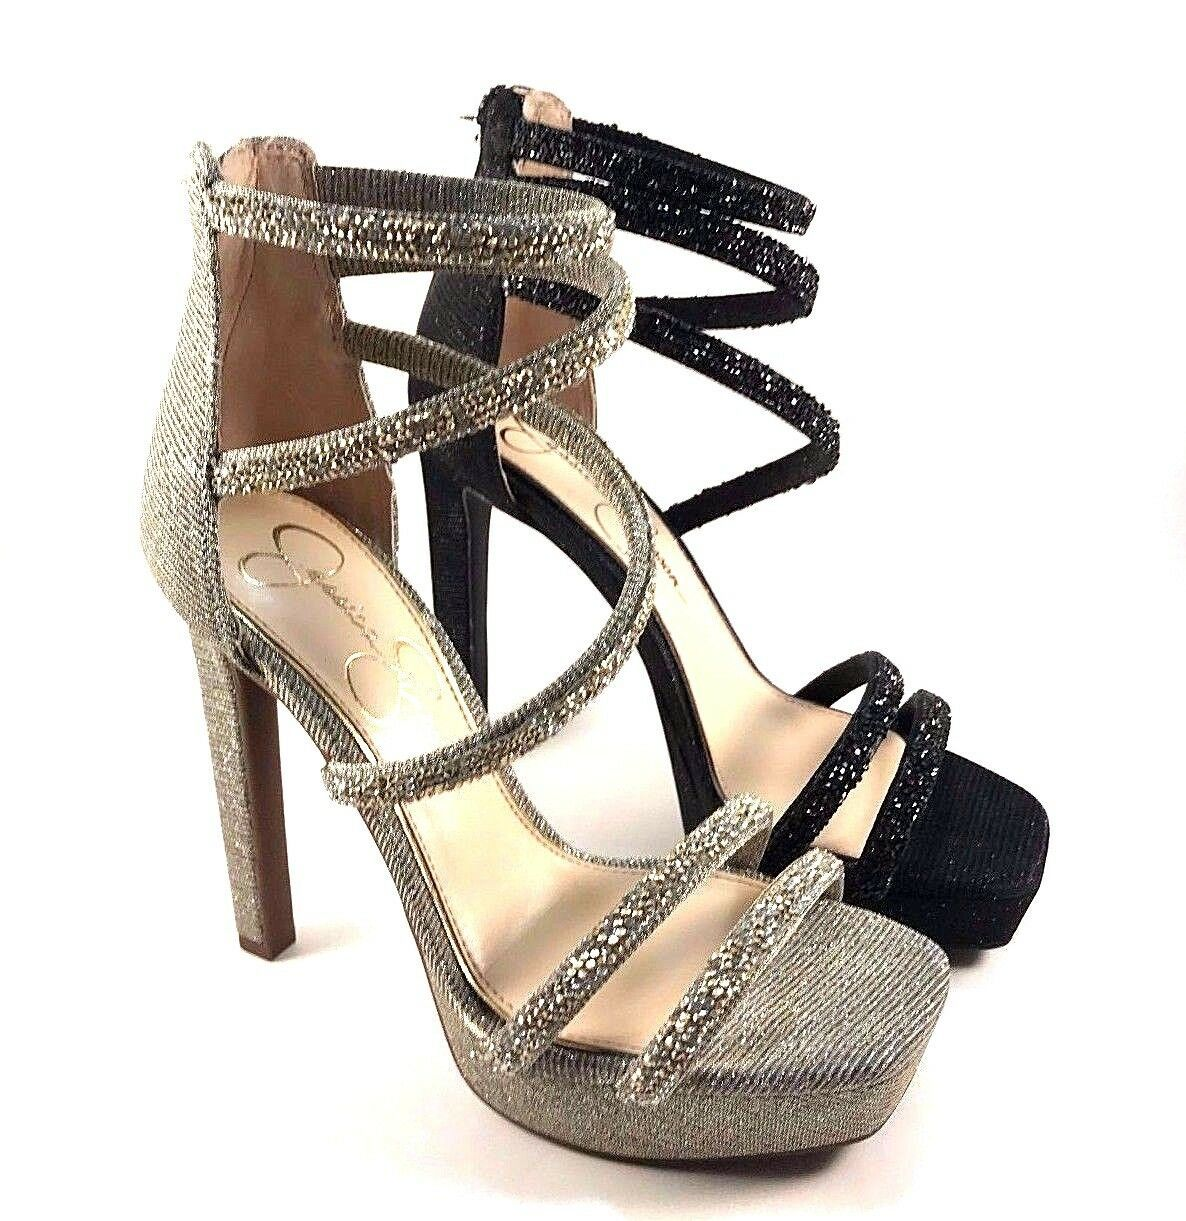 Primary image for Jessica Simpson Beyonah High Heel Strappy Platform Dress Sandal Choose Sz/Color